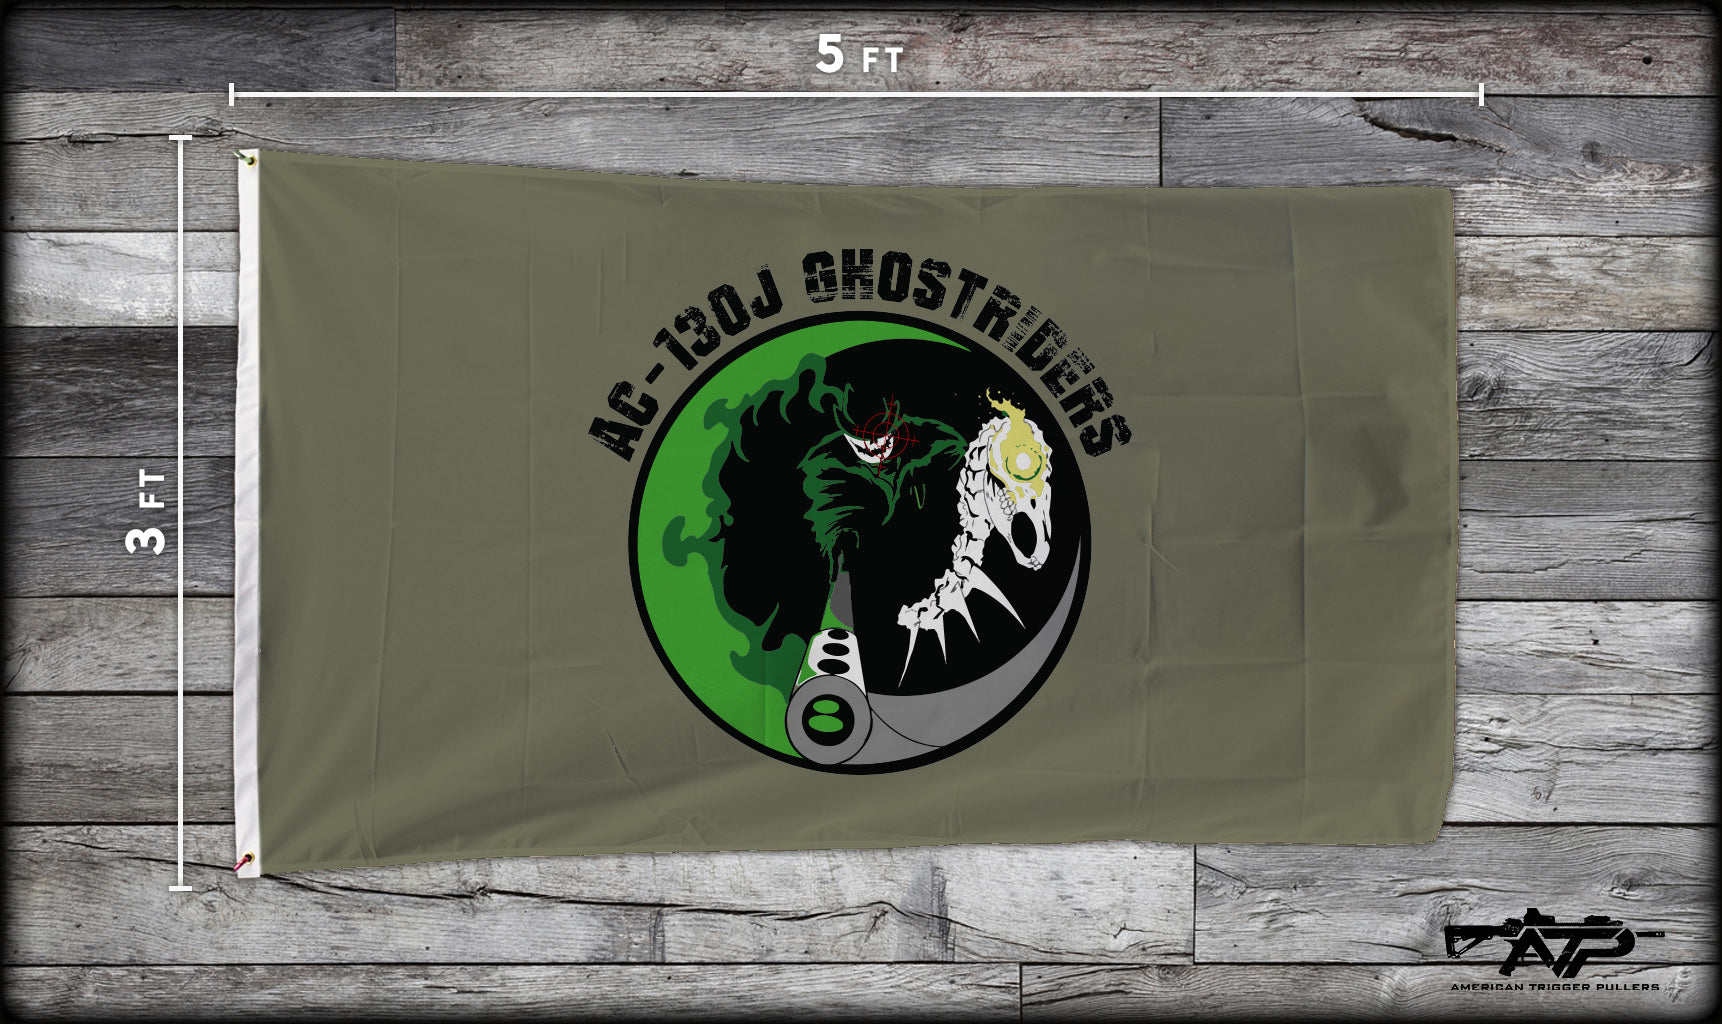 73rd Ghostriders Flag